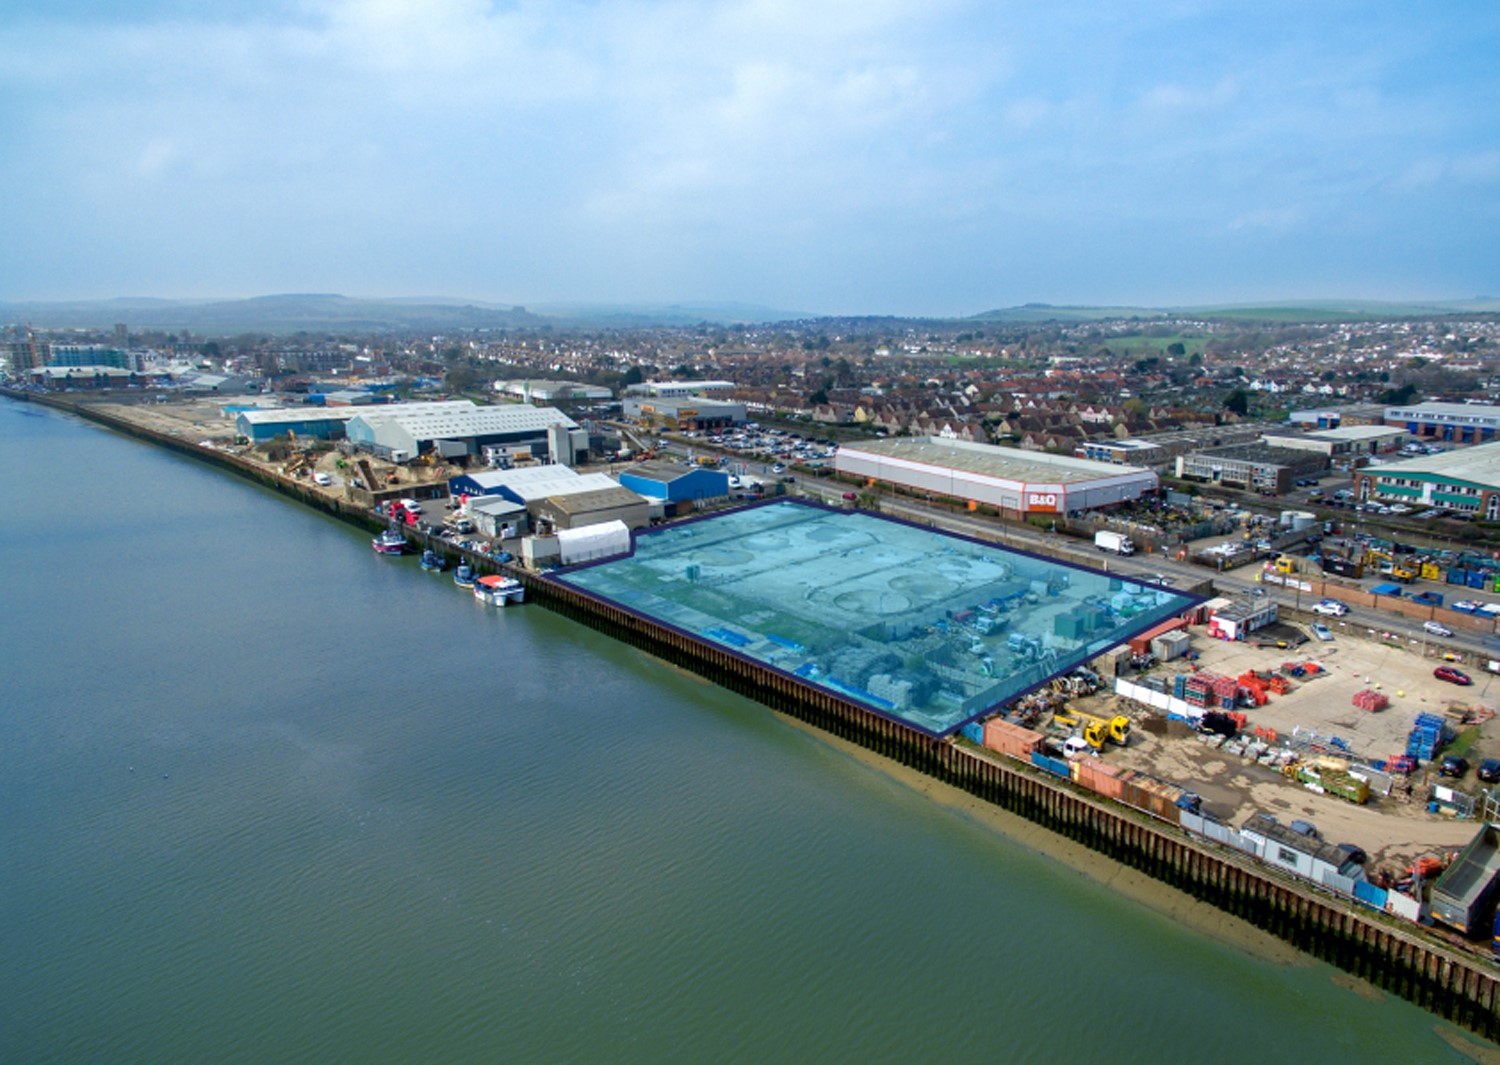 New Sale Completed - Lennards Wharf, 33 Brighton Road, Shoreham-by-sea